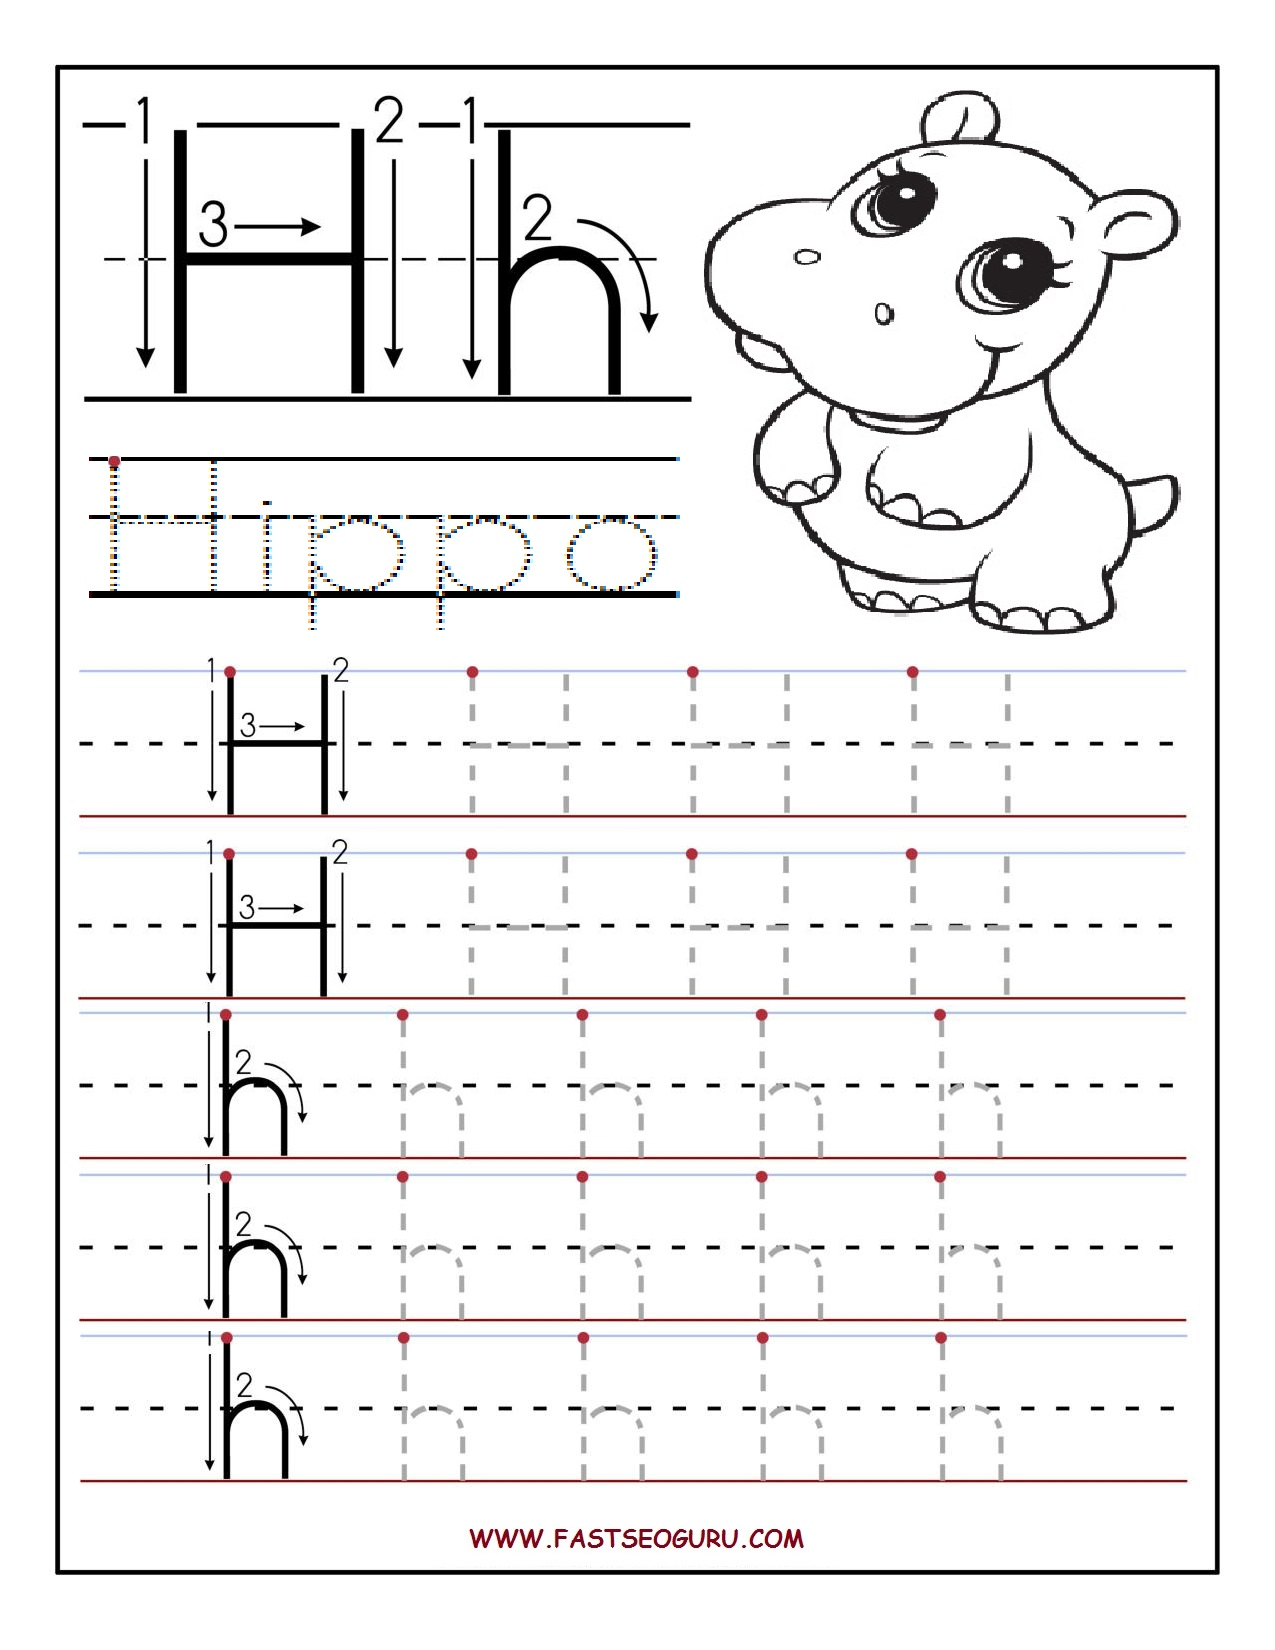 ... Worksheet On Homonyms | Free Download Printable Worksheets On Jkw4p